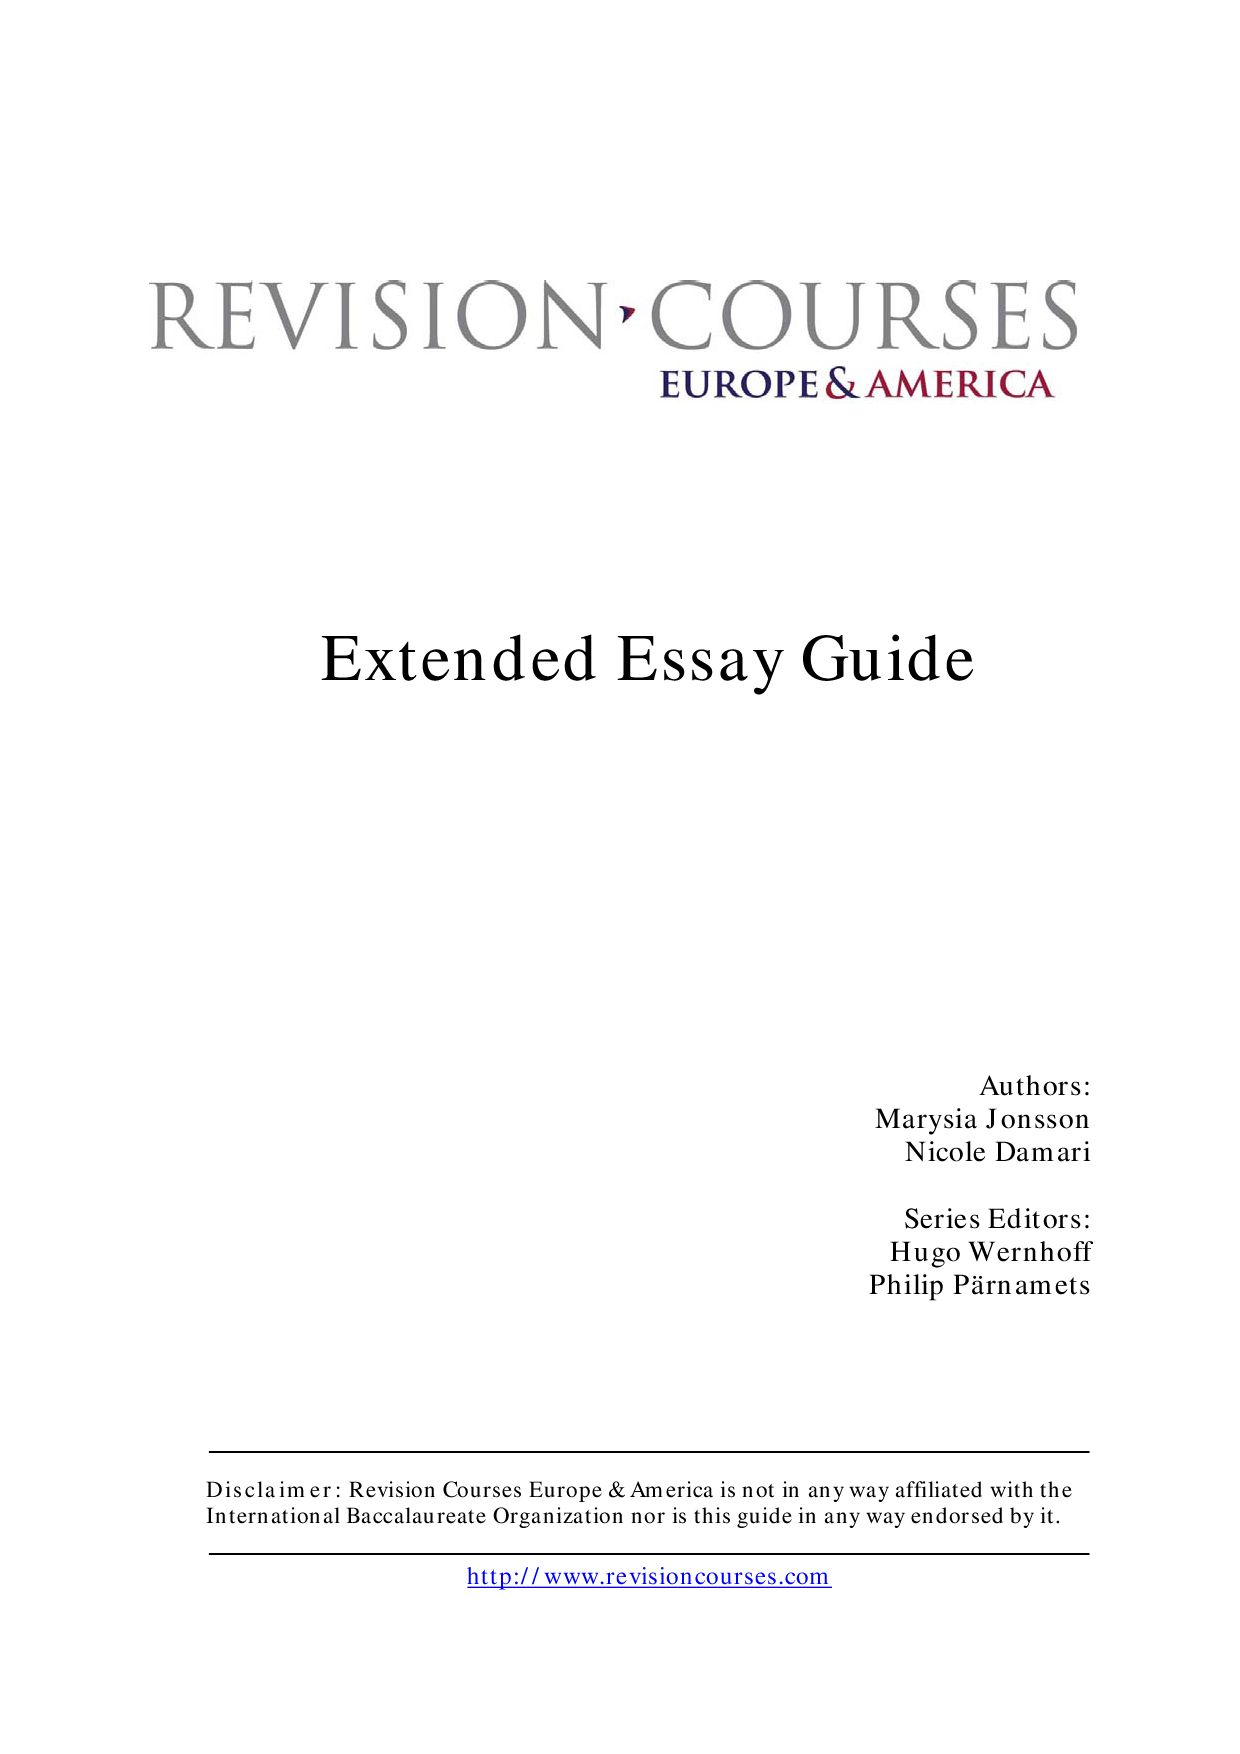 Extended essay guide